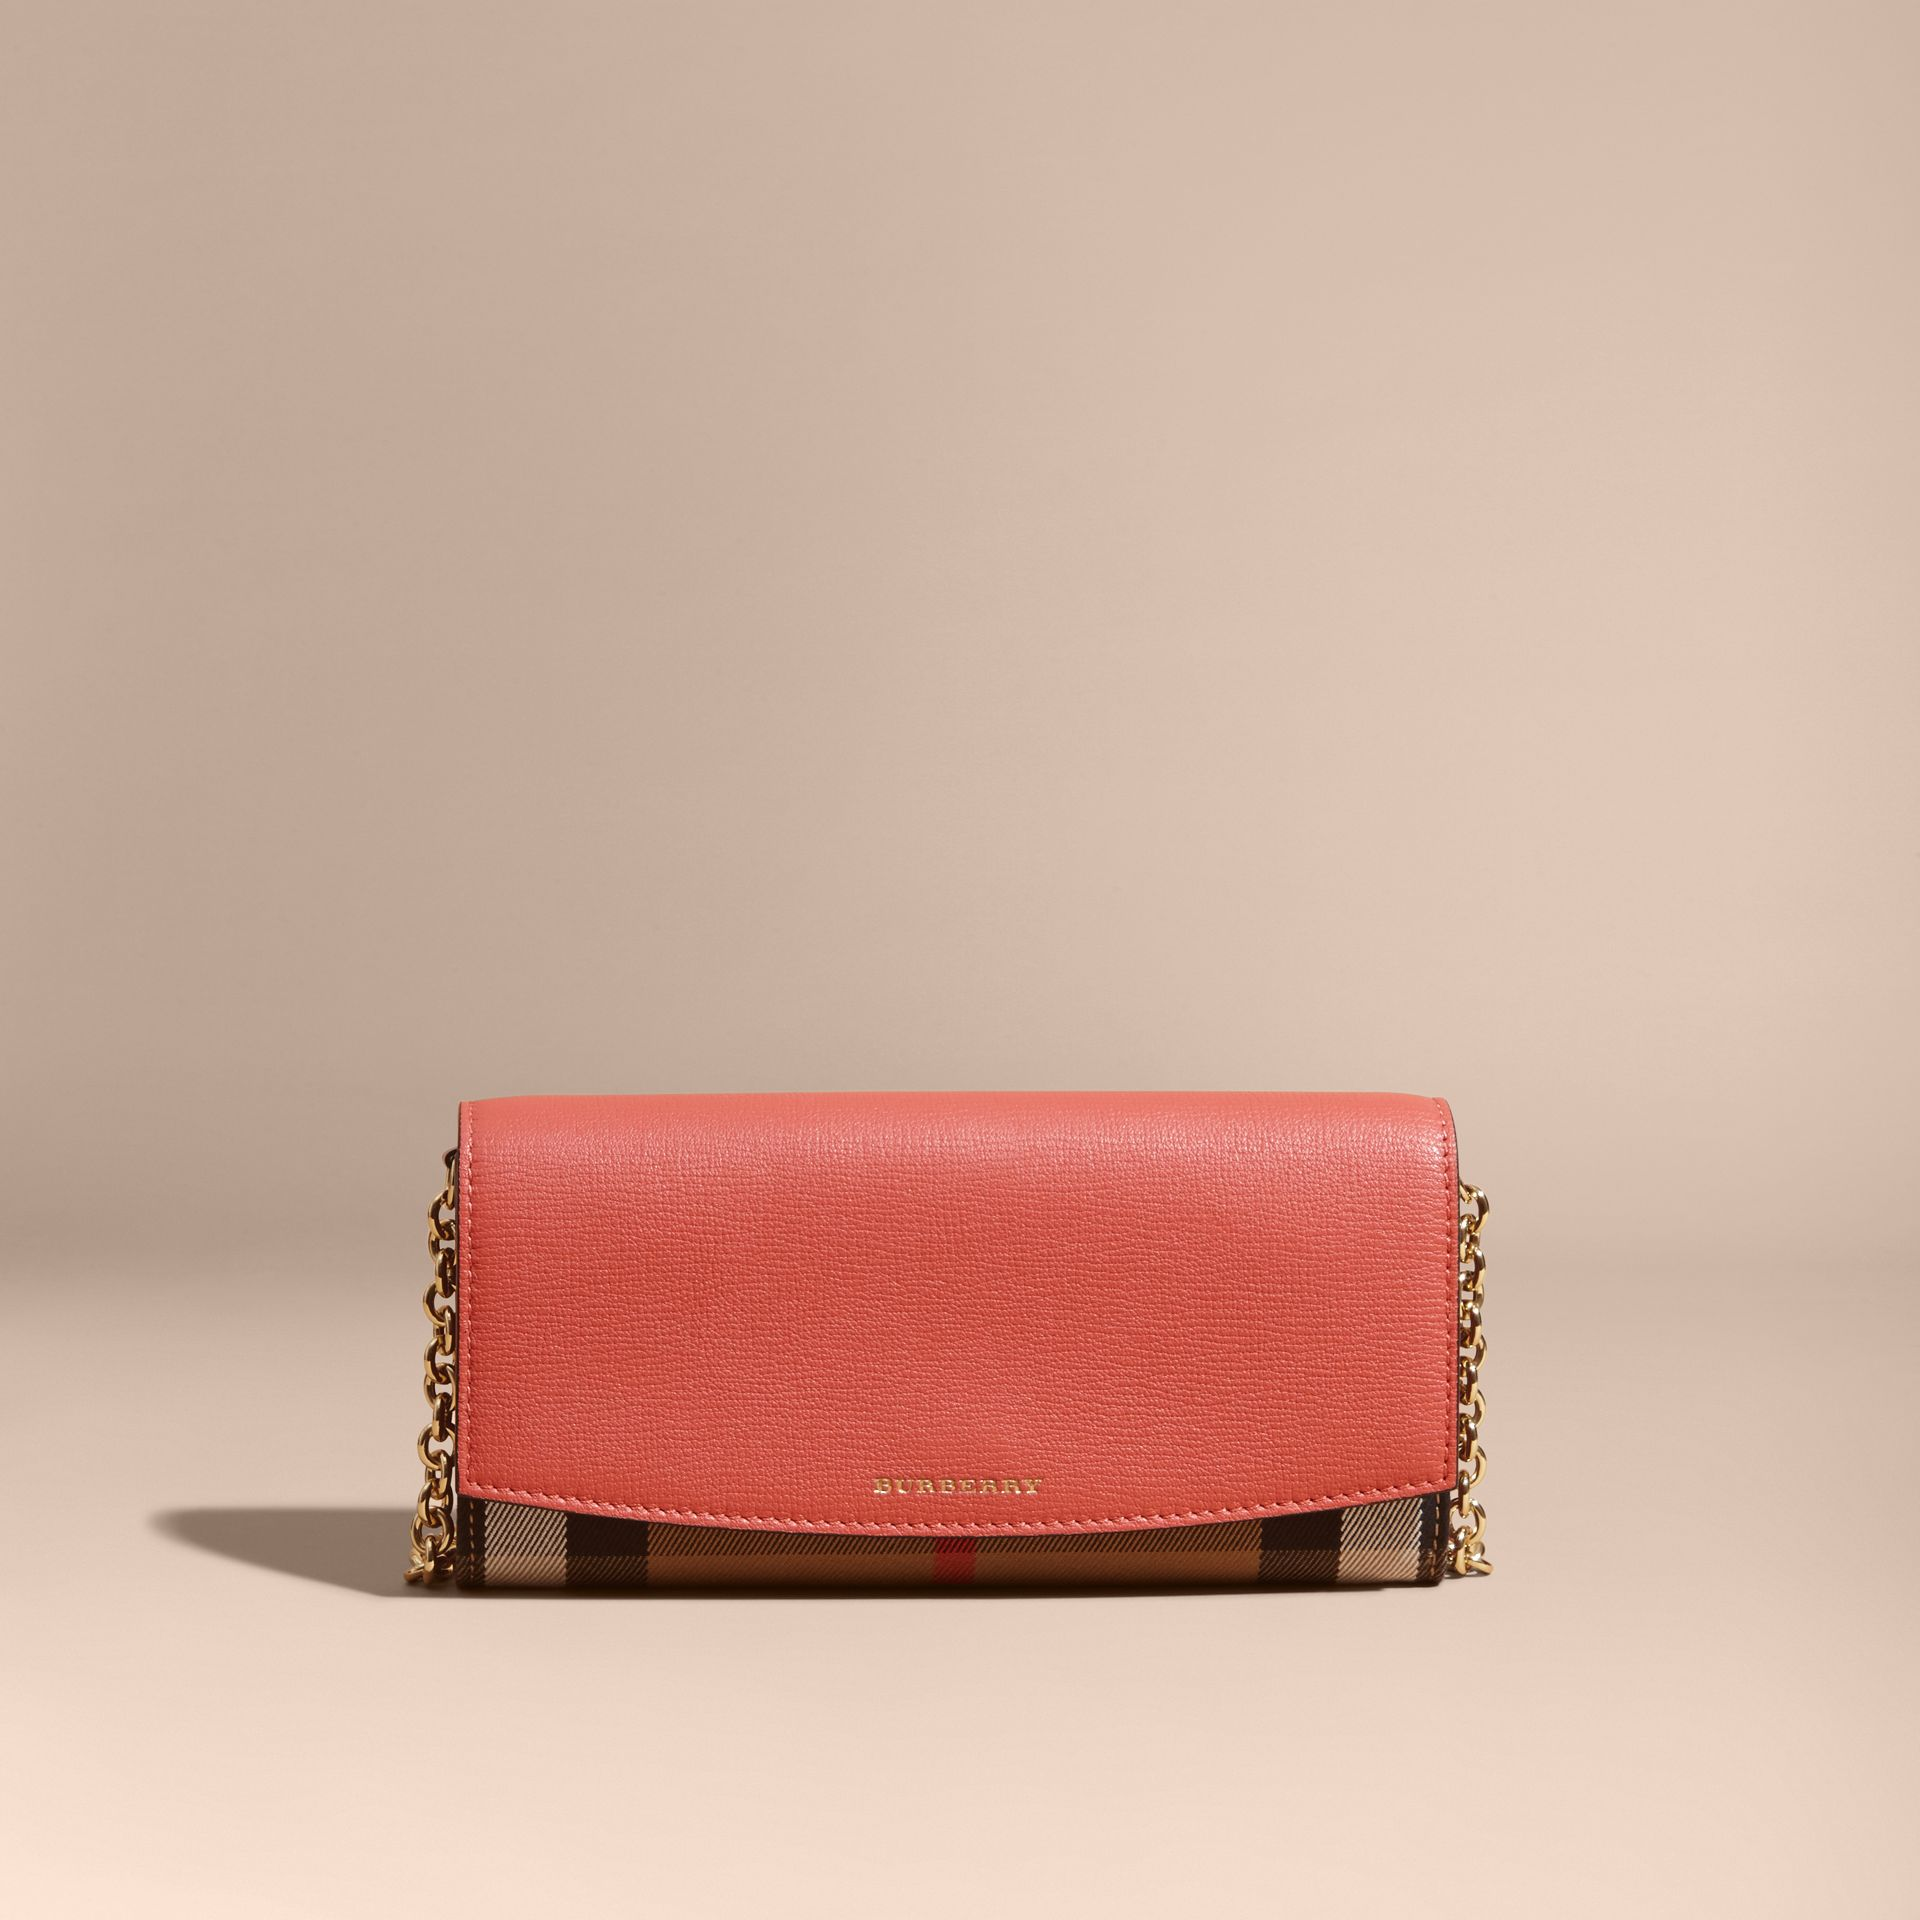 House Check and Leather Wallet with Chain in Cinnamon Red - Women | Burberry Australia - gallery image 6